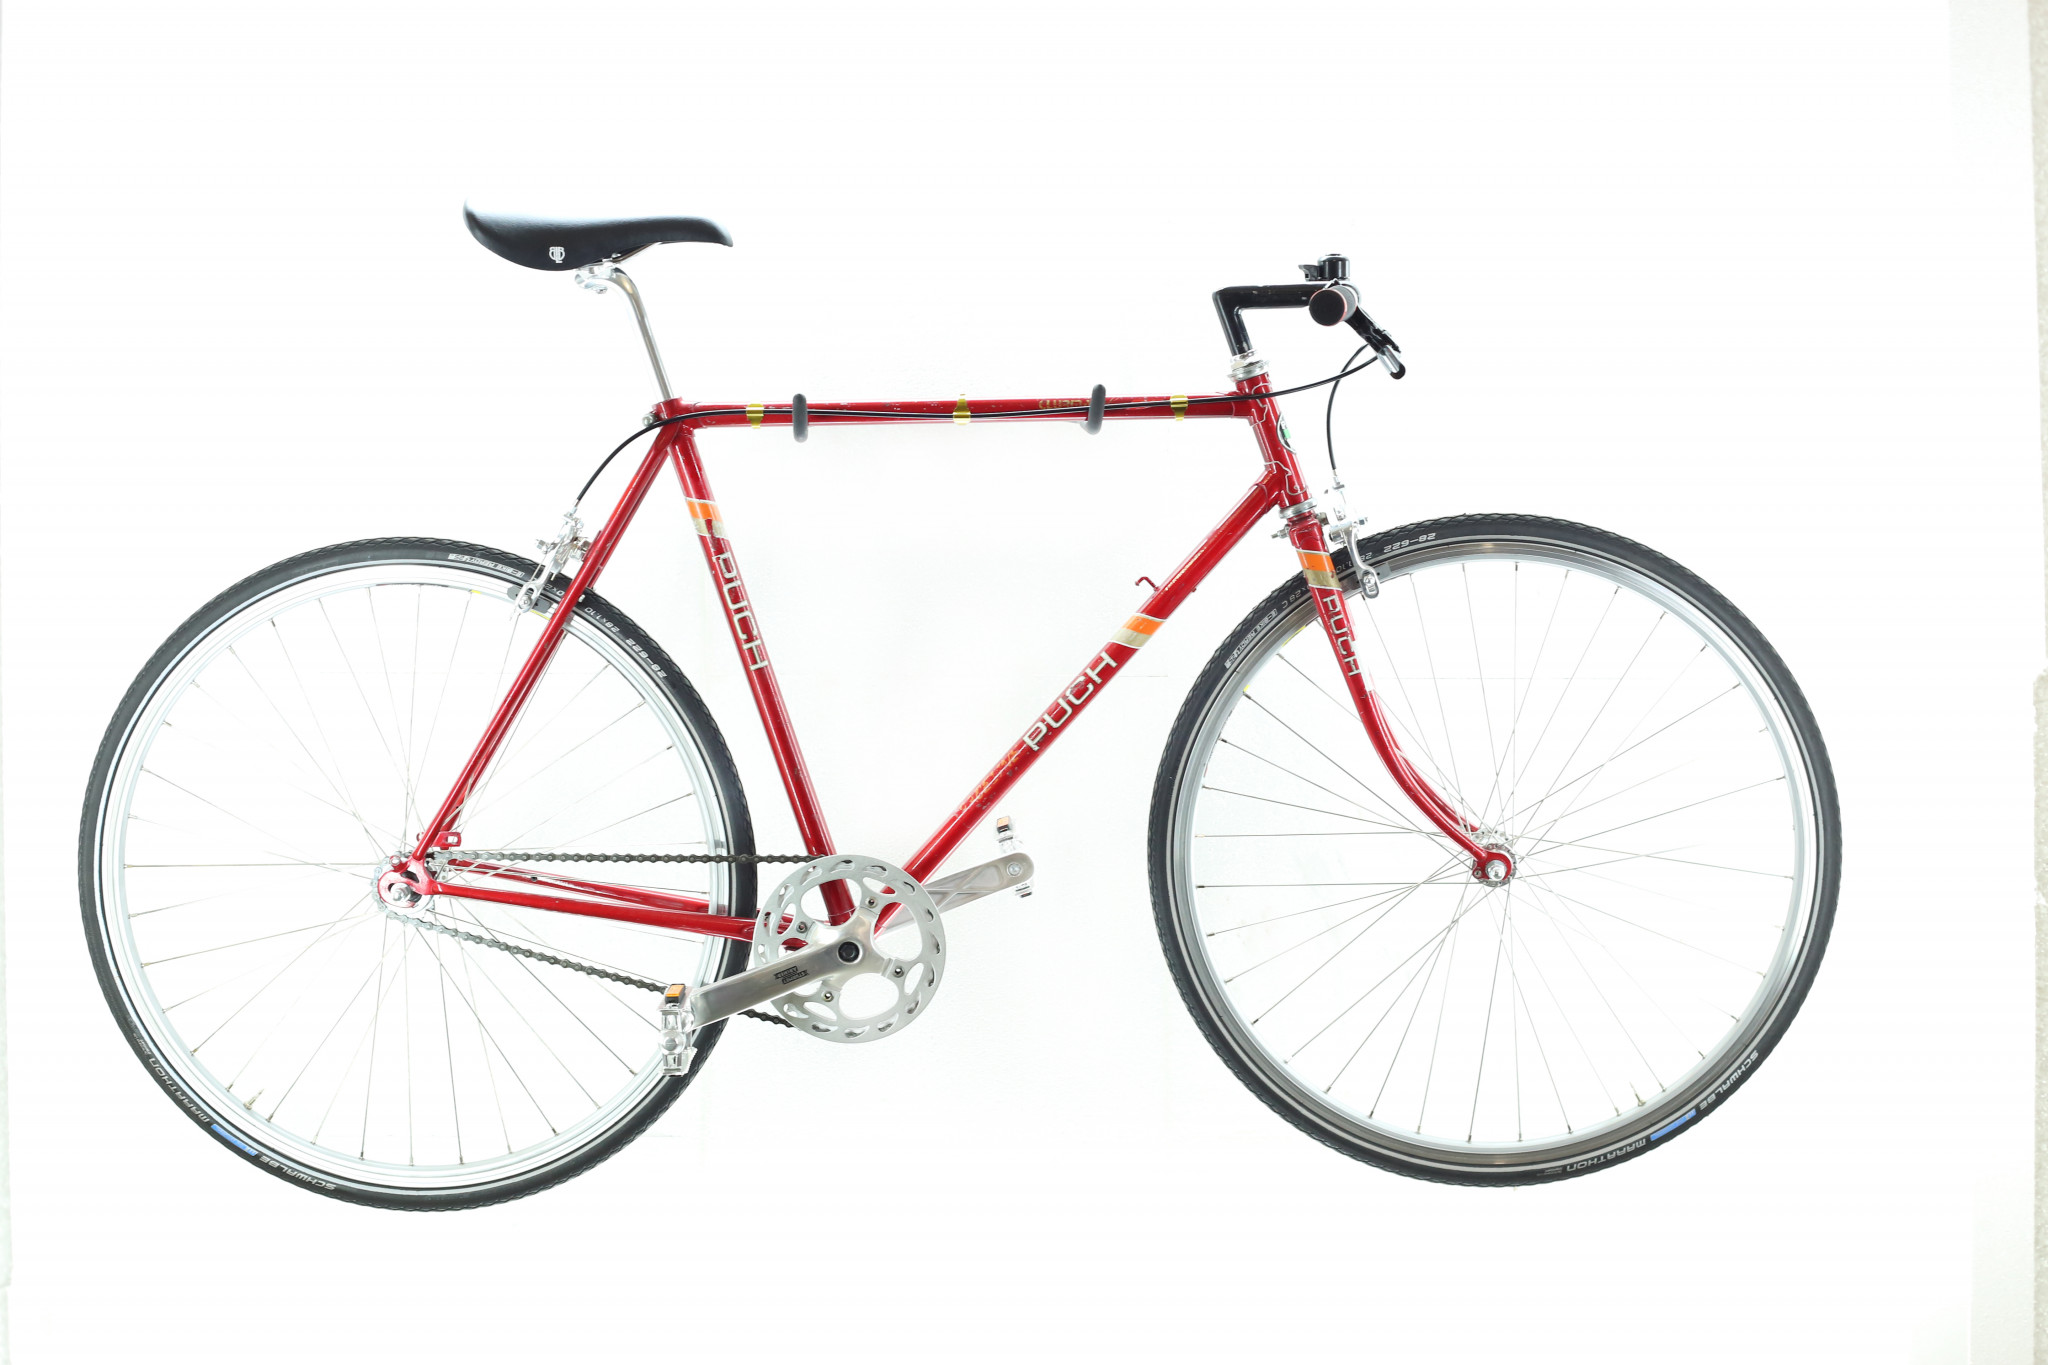 cu puch red 1 - Feuerroter Single-Speed Traum